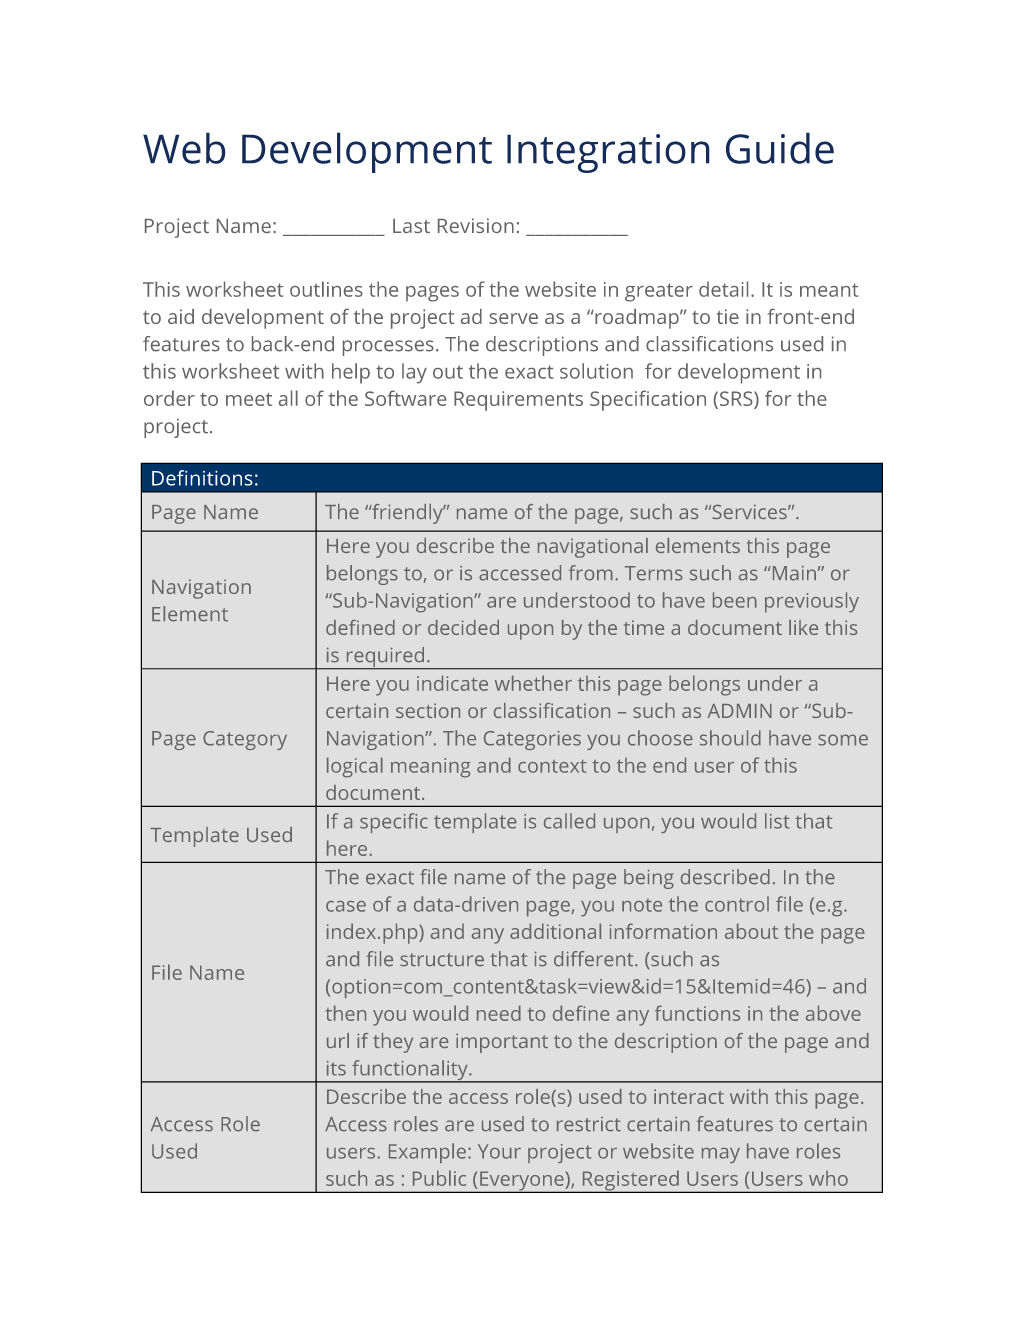 Web Development Integration Guide